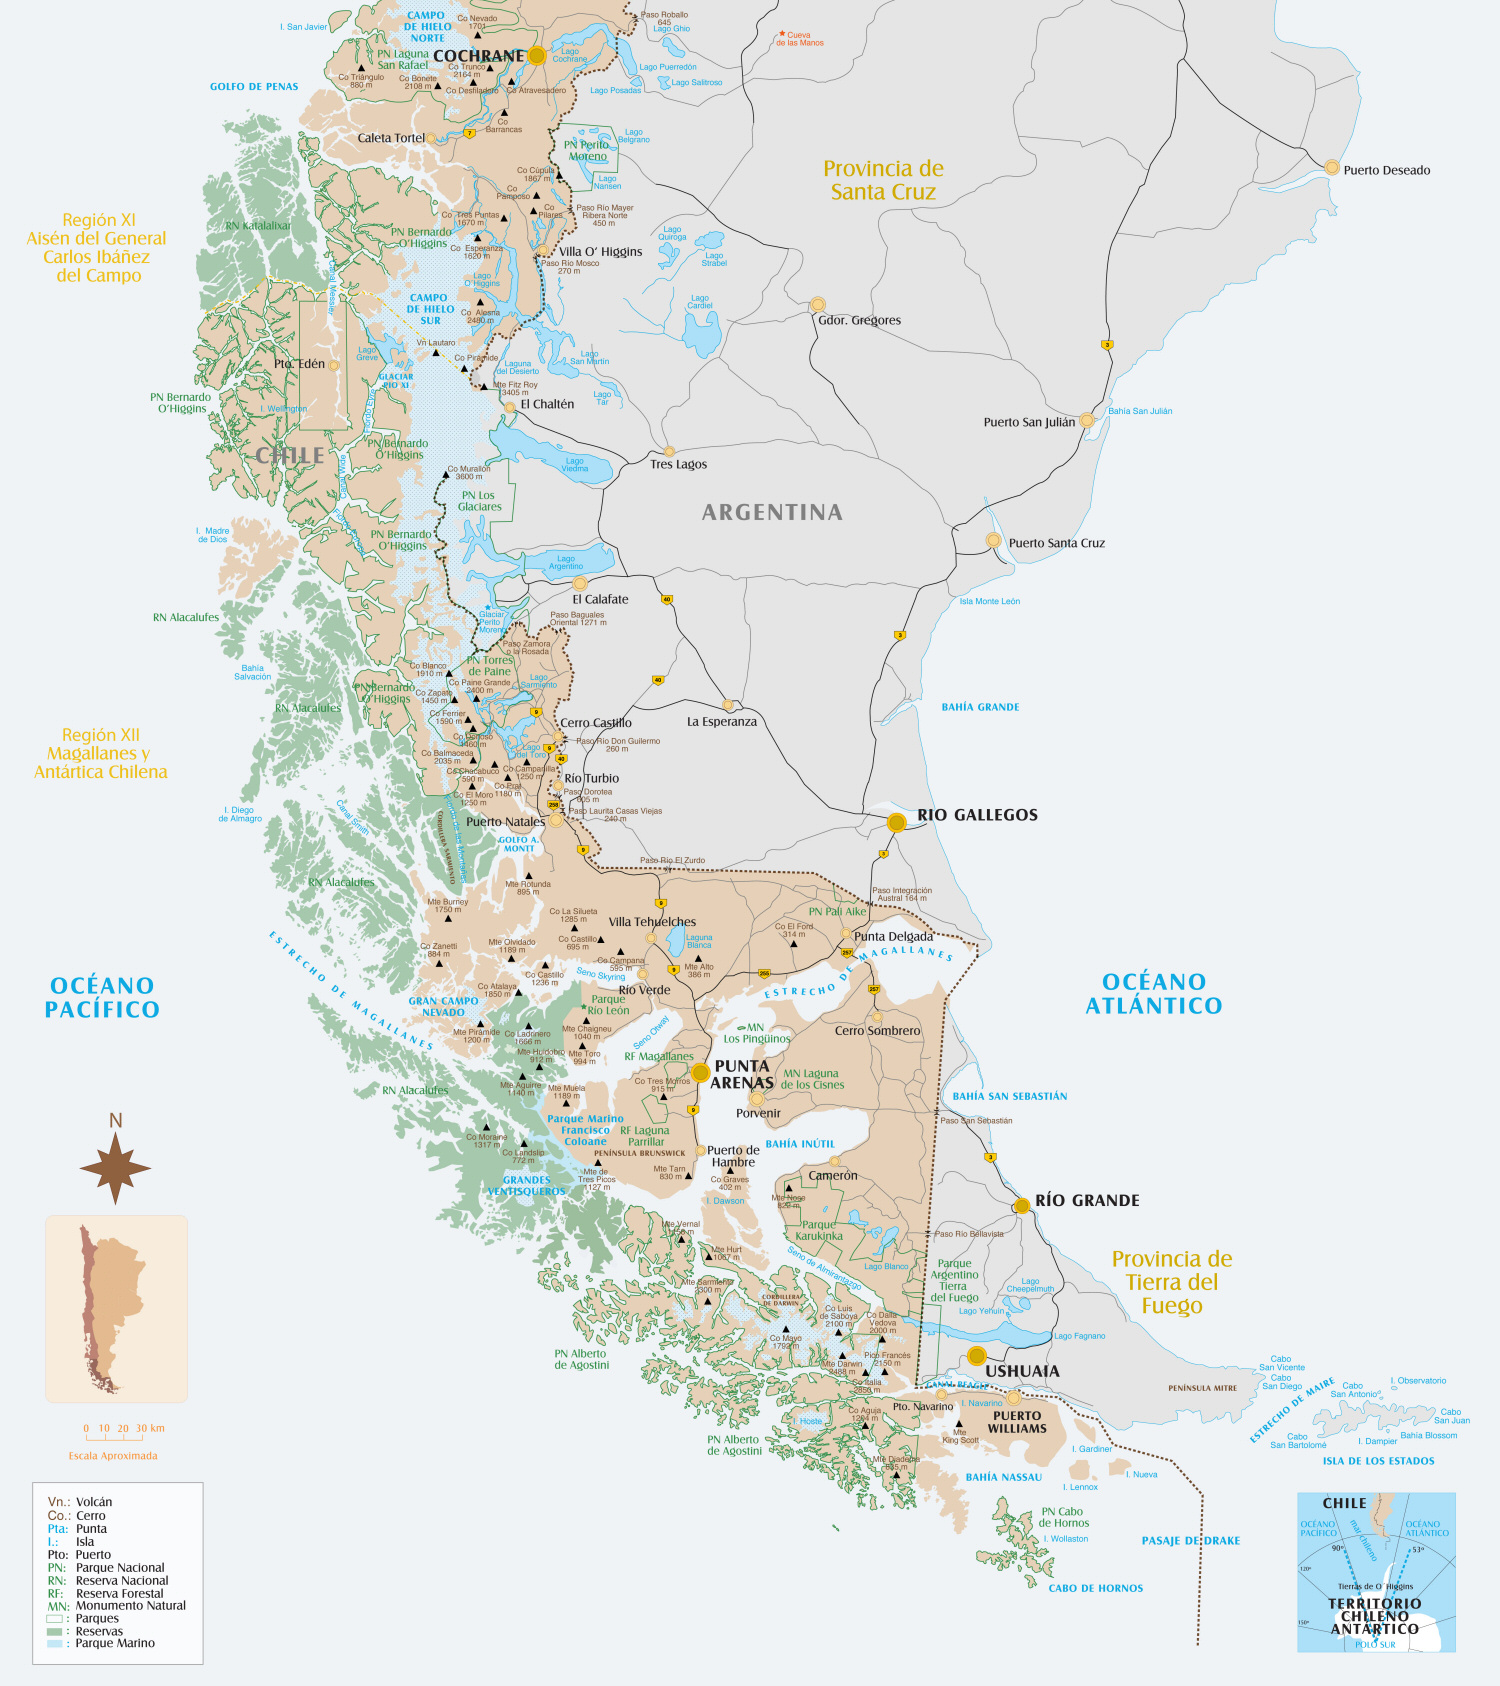 Carte Amerique Sud Patagonie.Carte Patagonie Australe Du Chili Map Southern Patagonia